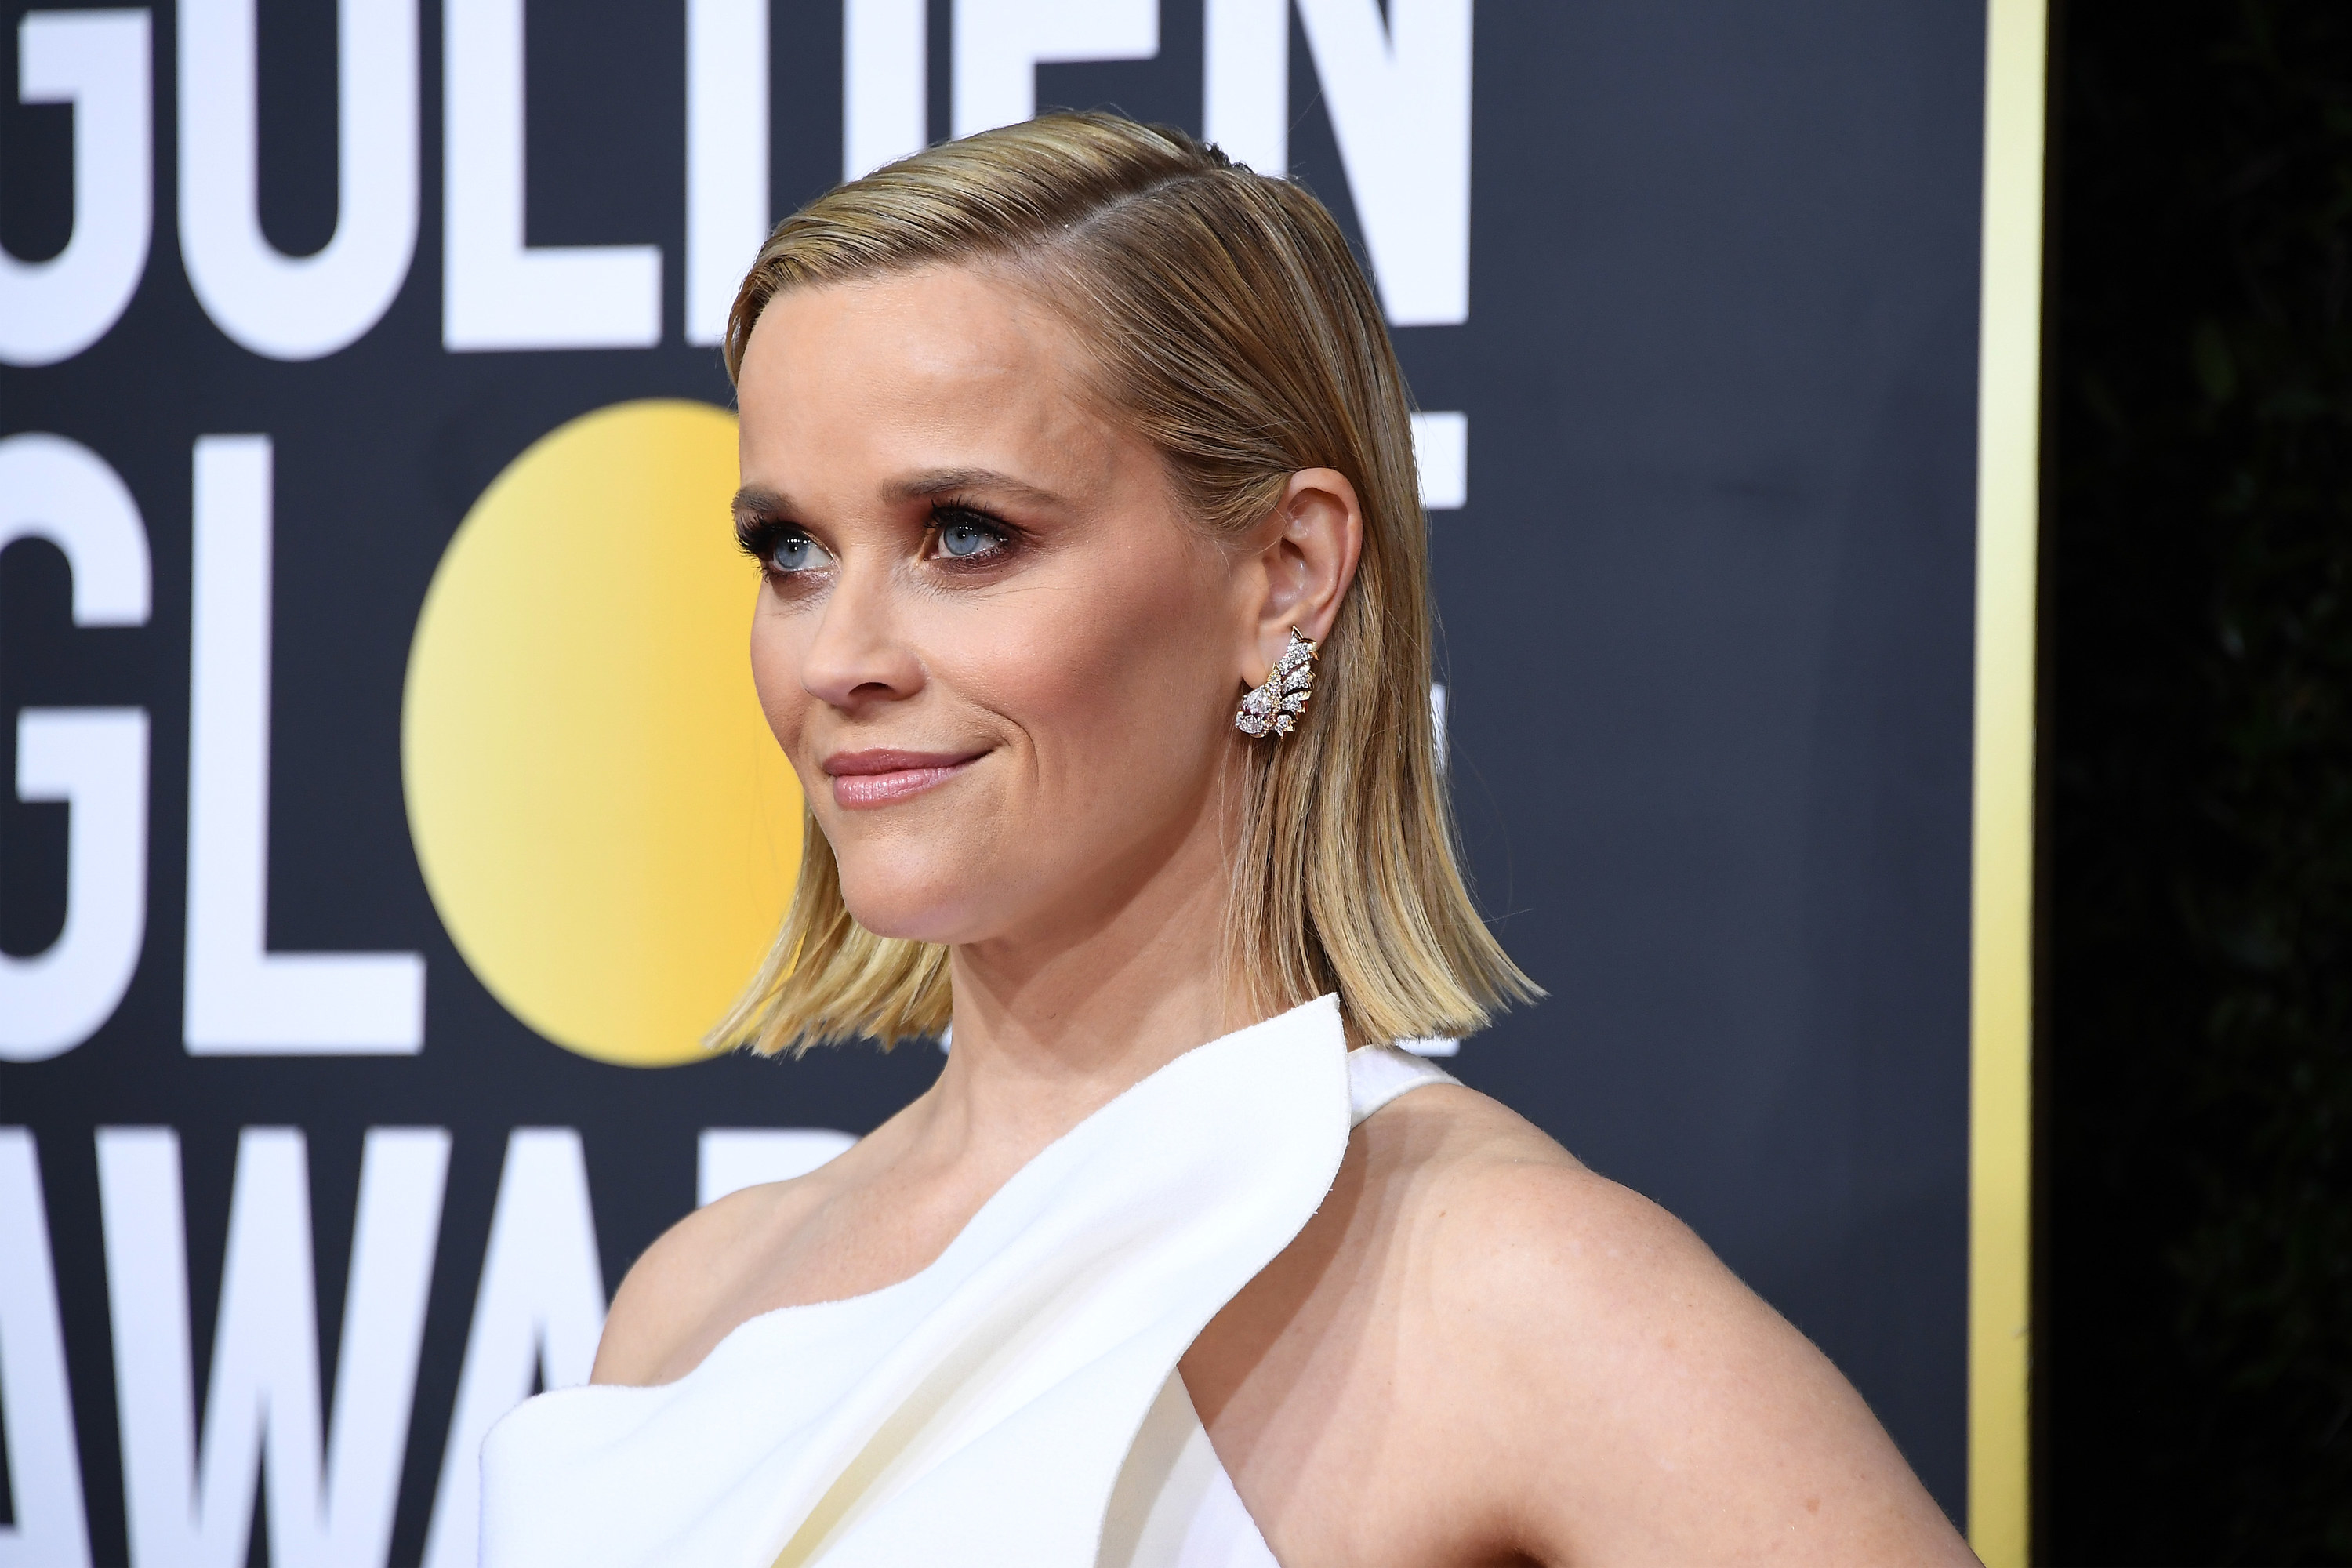 Reese Witherspoon attends the 77th Annual Golden Globe Awards